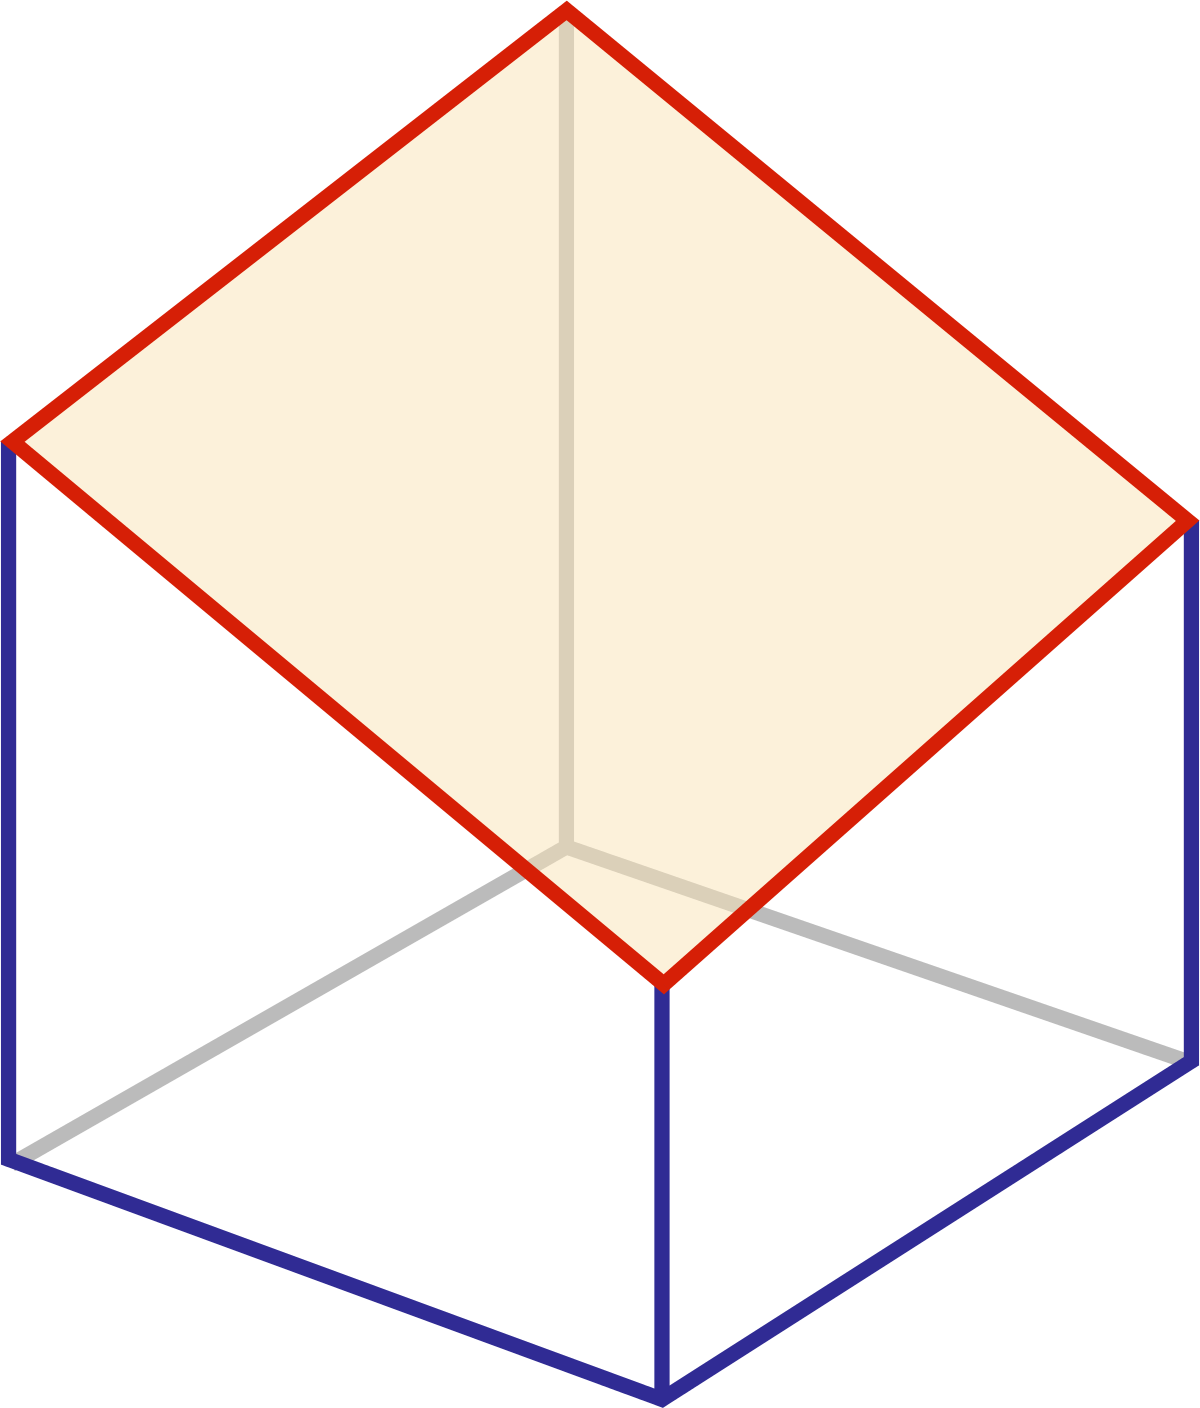 d coordinate geometry equation of a plane math an infinite column is centered along the z axis it has a square cross section of side length equal to 10 it is cut by the plane 4x 7y 4z